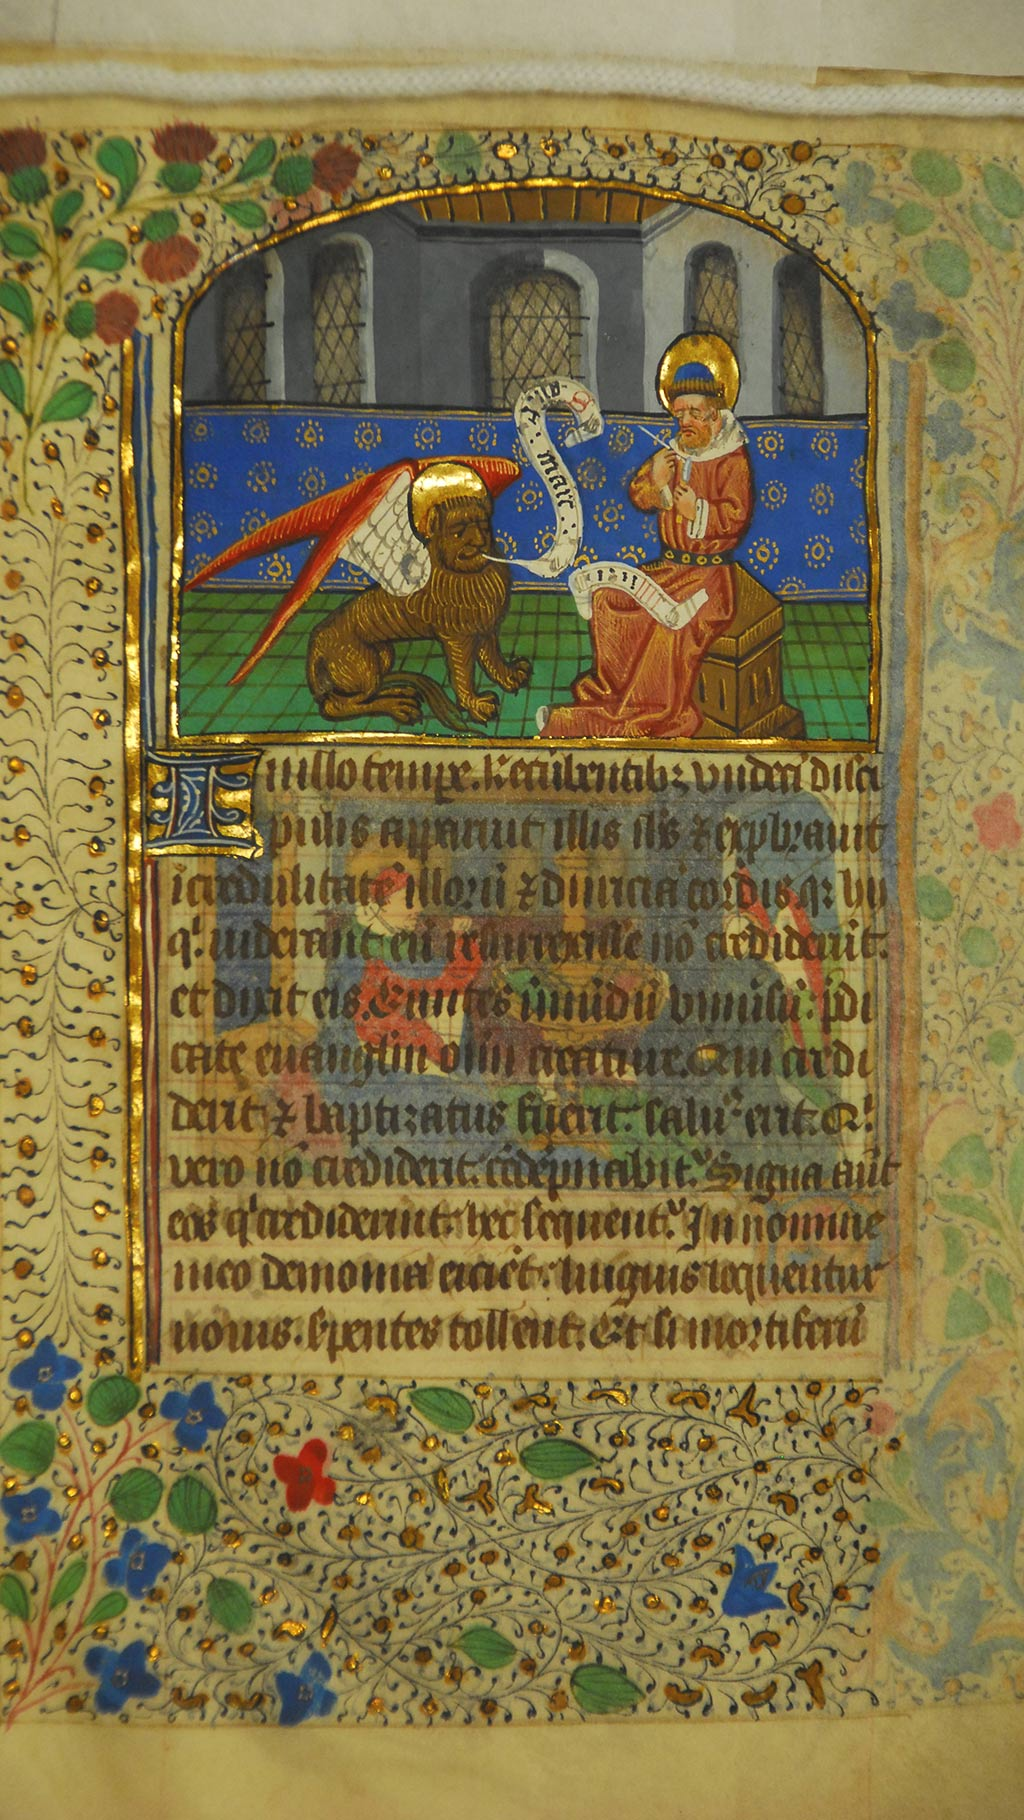 inside page of the manuscript,  man holding a pen, horse with wings, followed by a paragraph in Latin